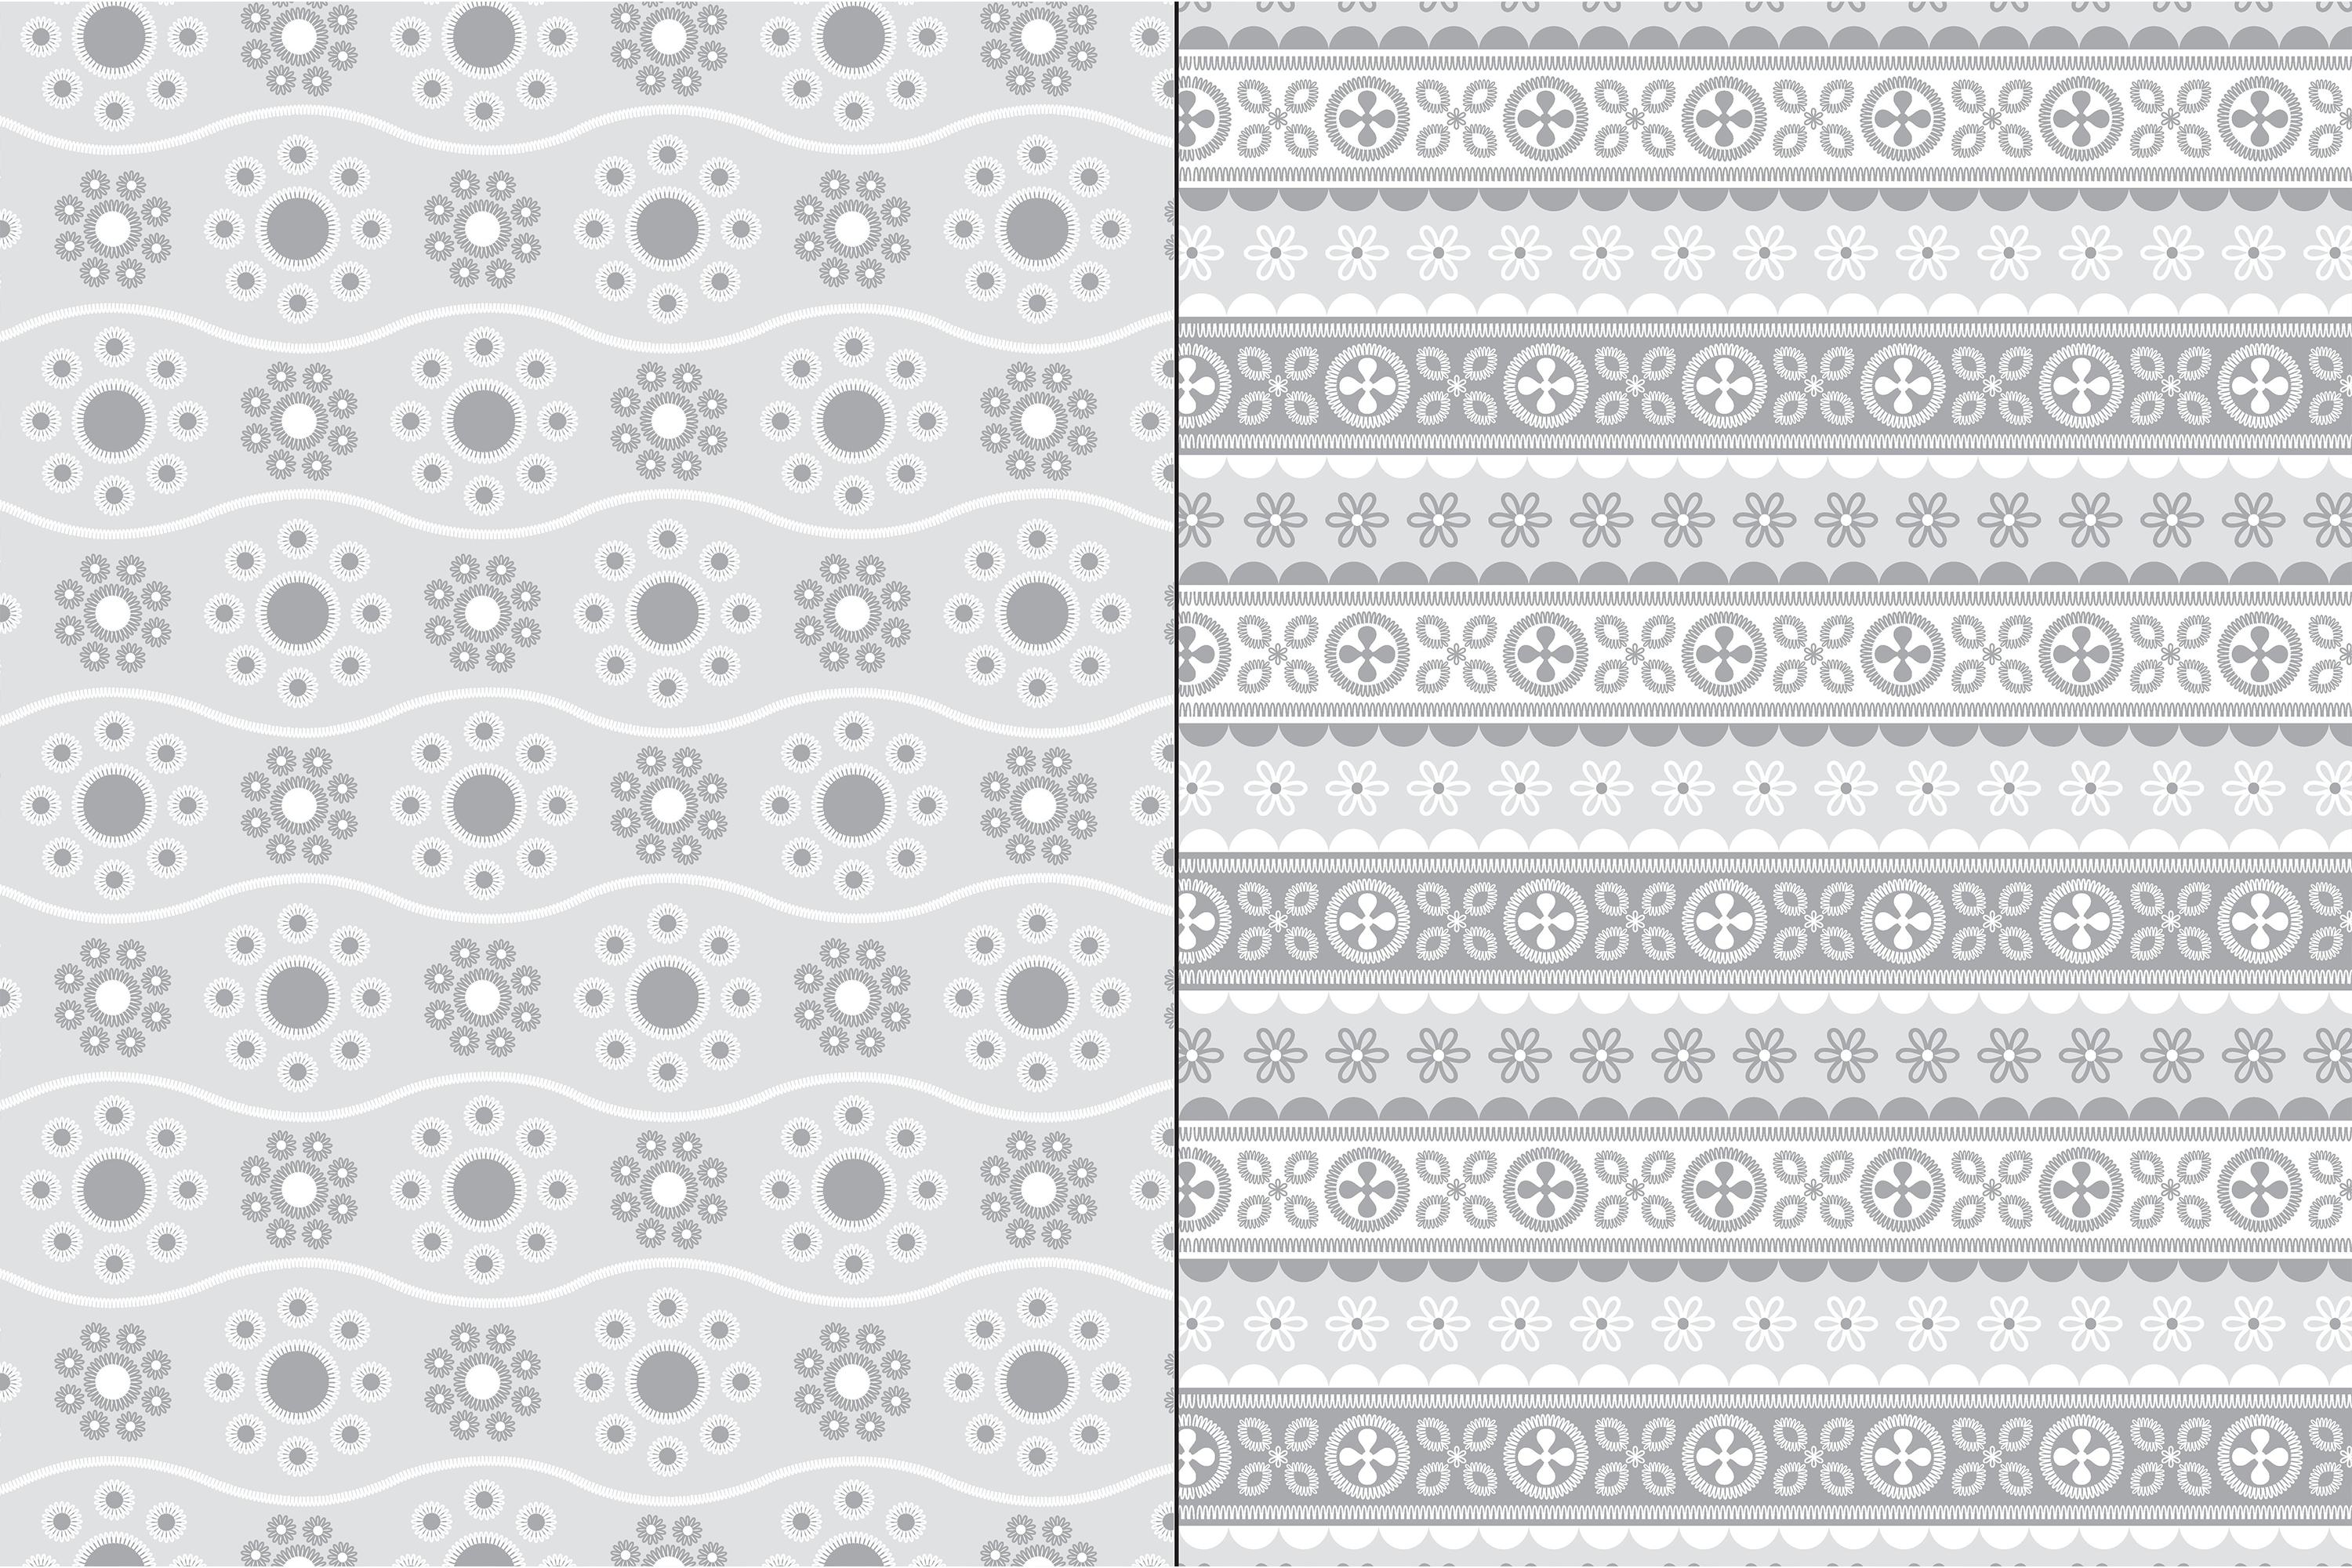 Gray Eyelet Embroidery Patterns example image 4